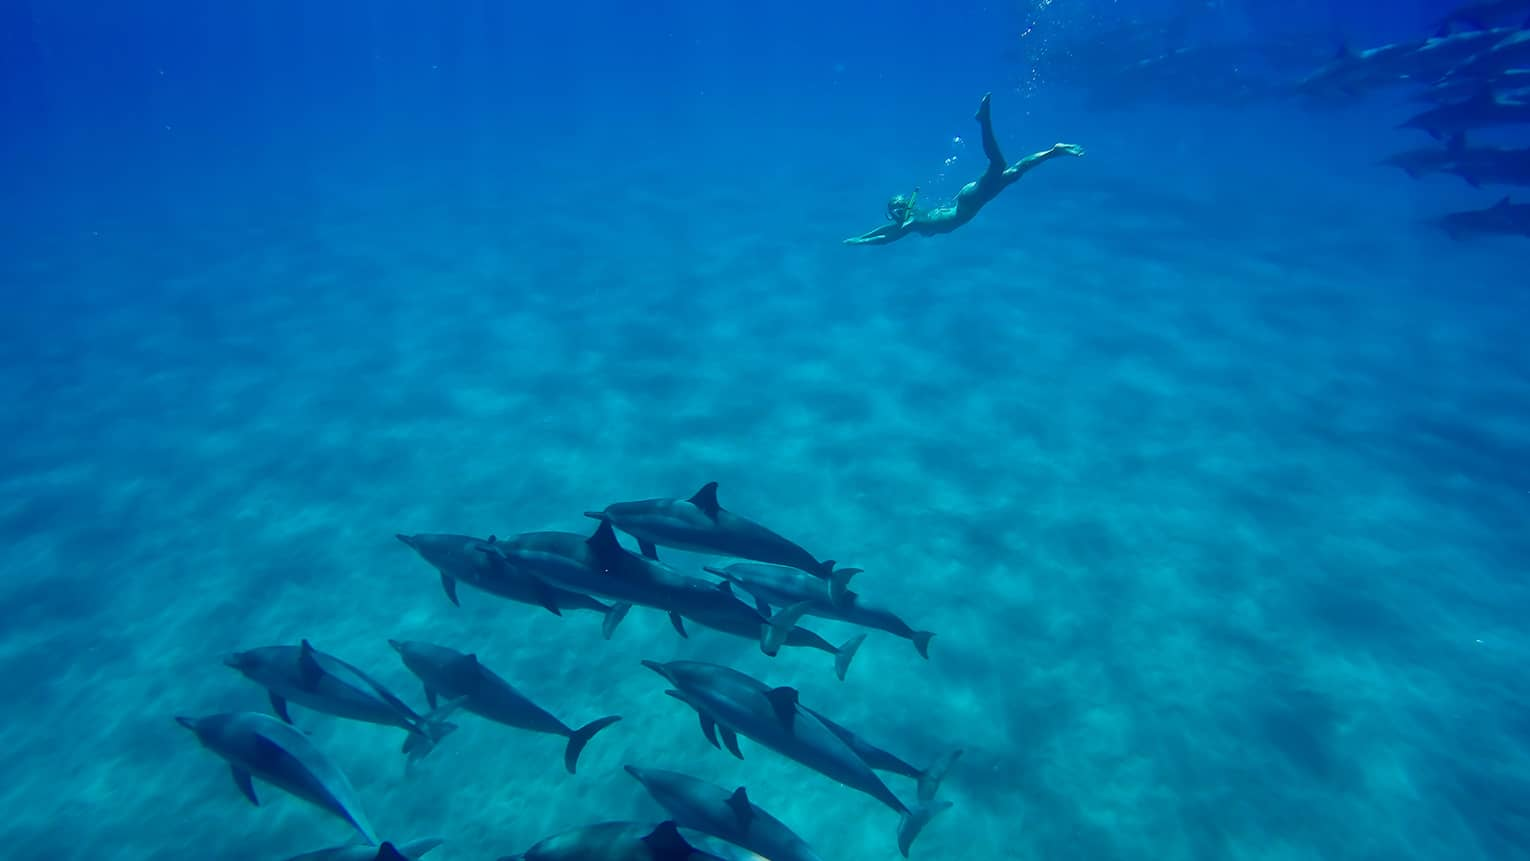 Underwater view of woman with snorkel, mask swimming to dolphin pod on ocean floor